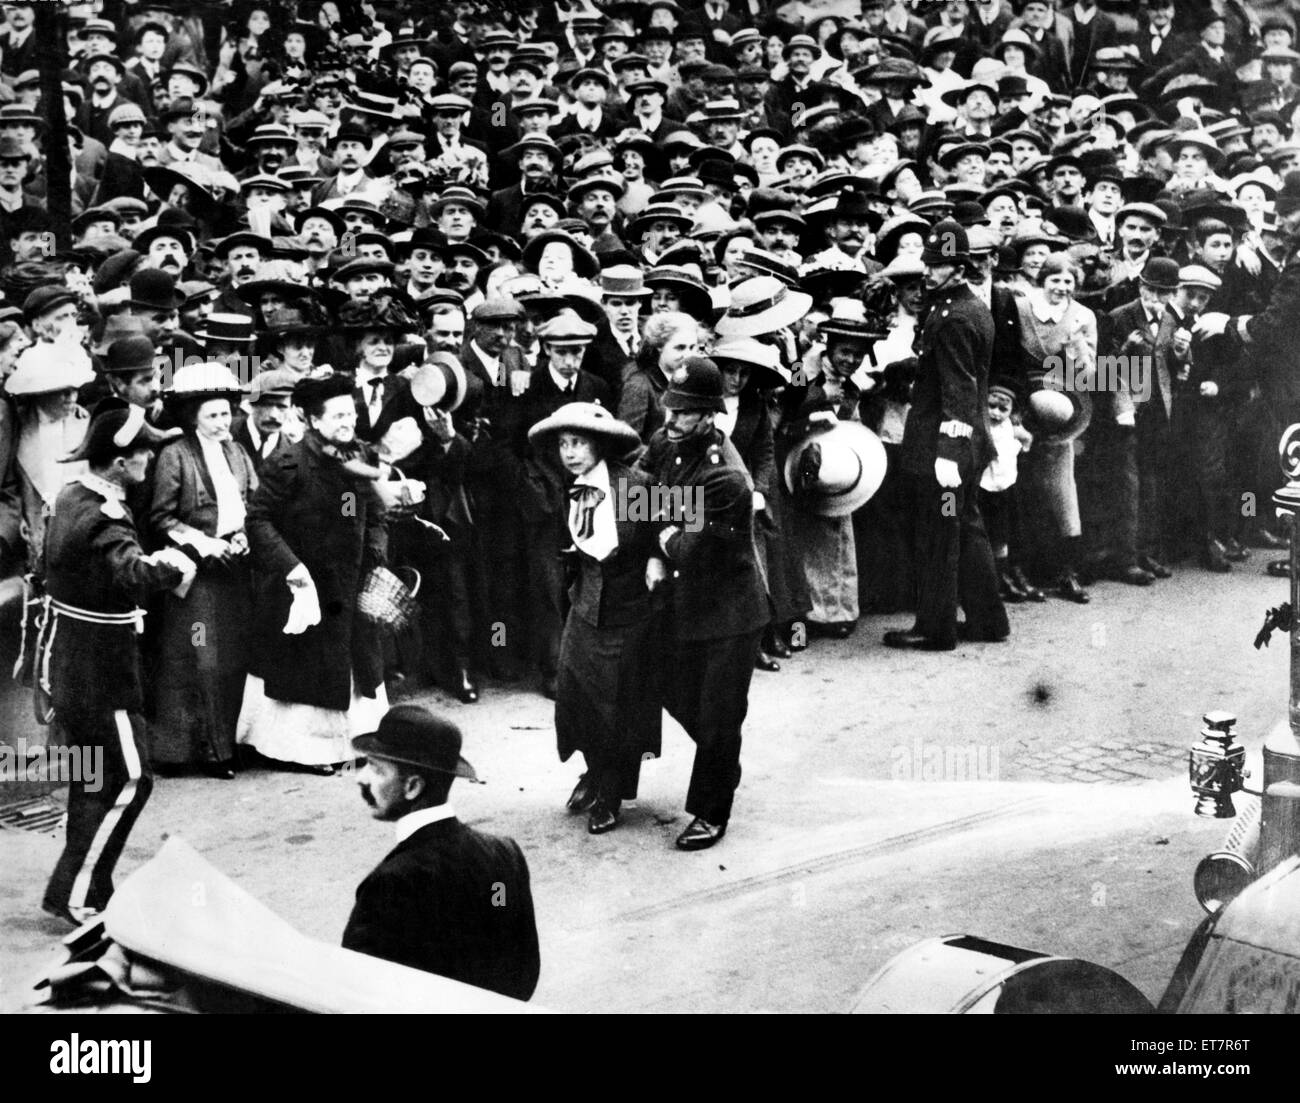 Young Suffragette, Mary Phillips, being dragged away by police after she threw flour at the Prime Minister, Mr Asquith, - Stock Image